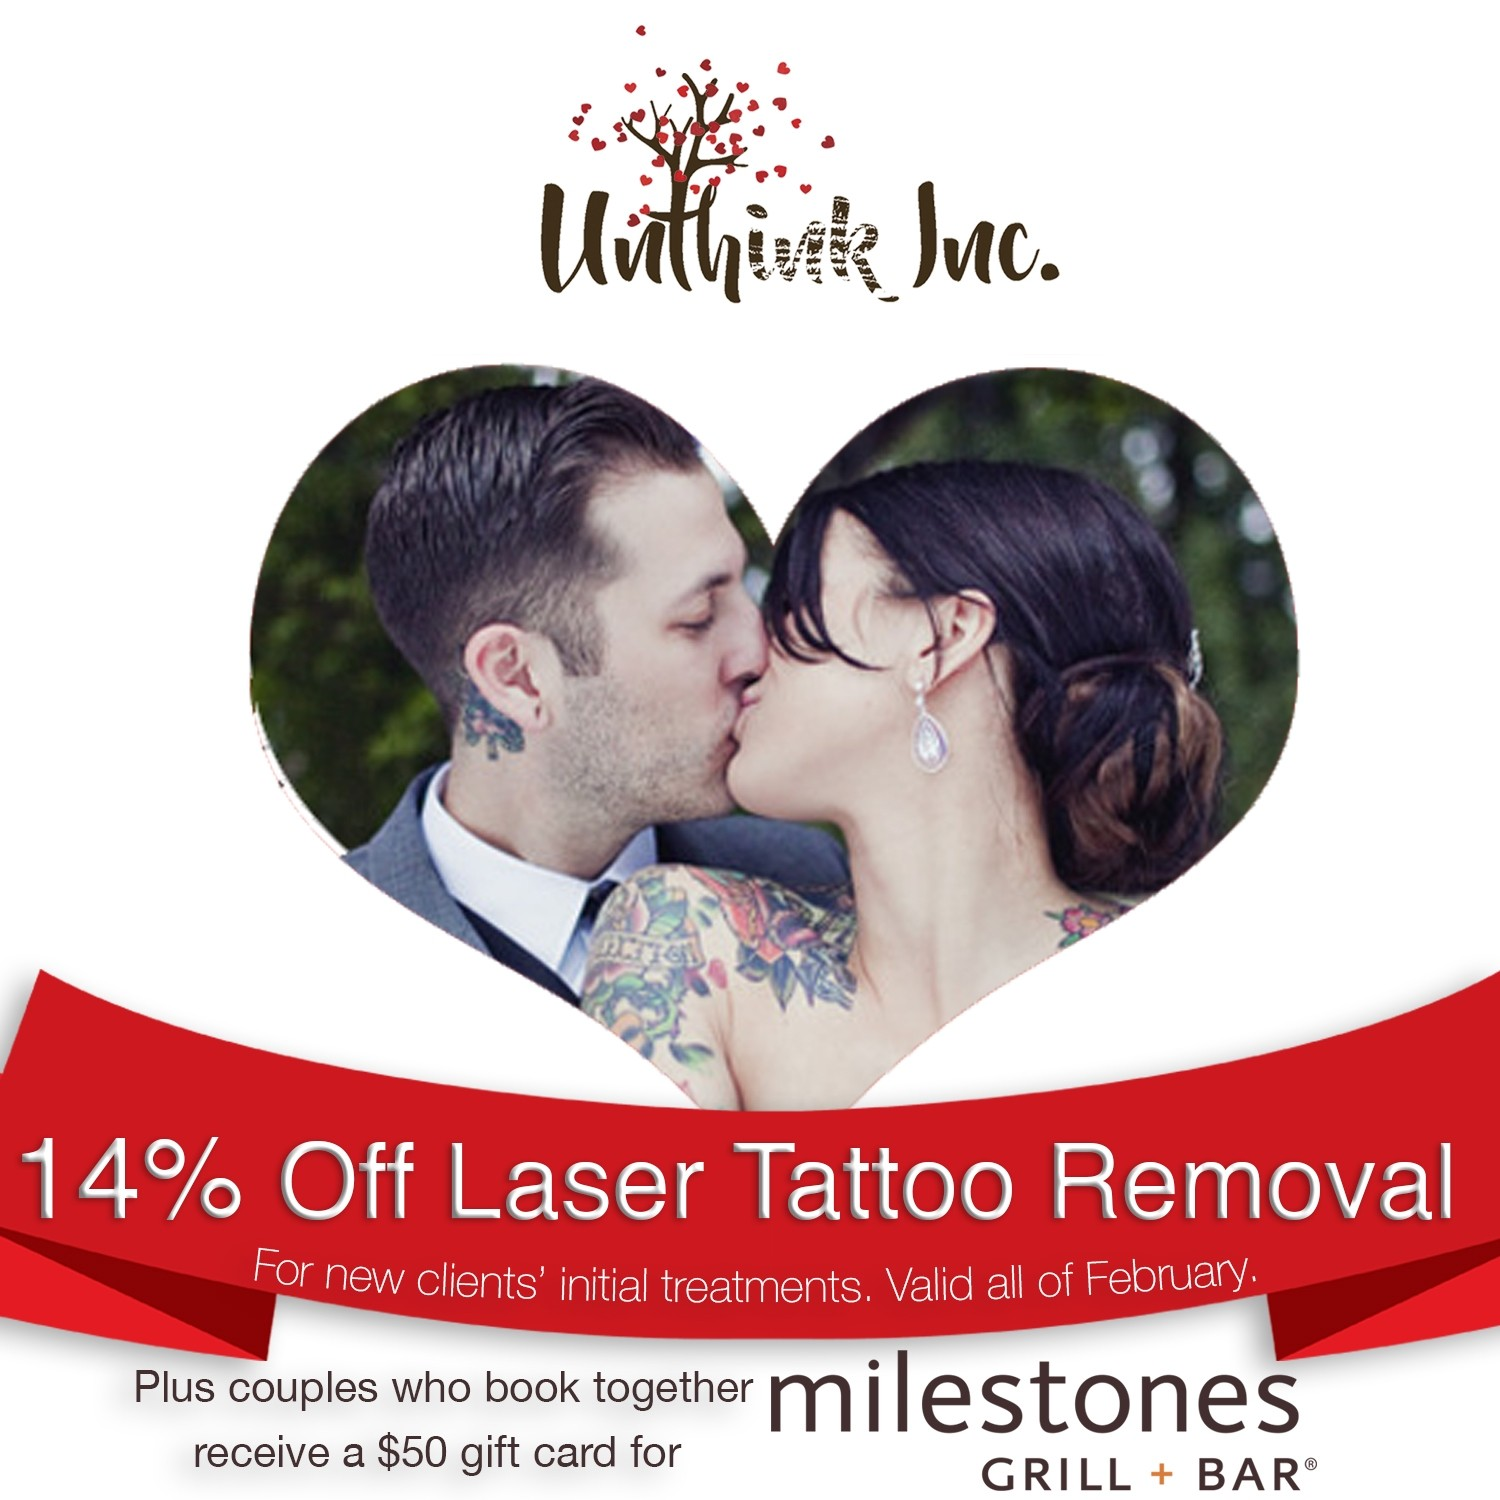 Unthink inc laser tattoo removal promotion ajax